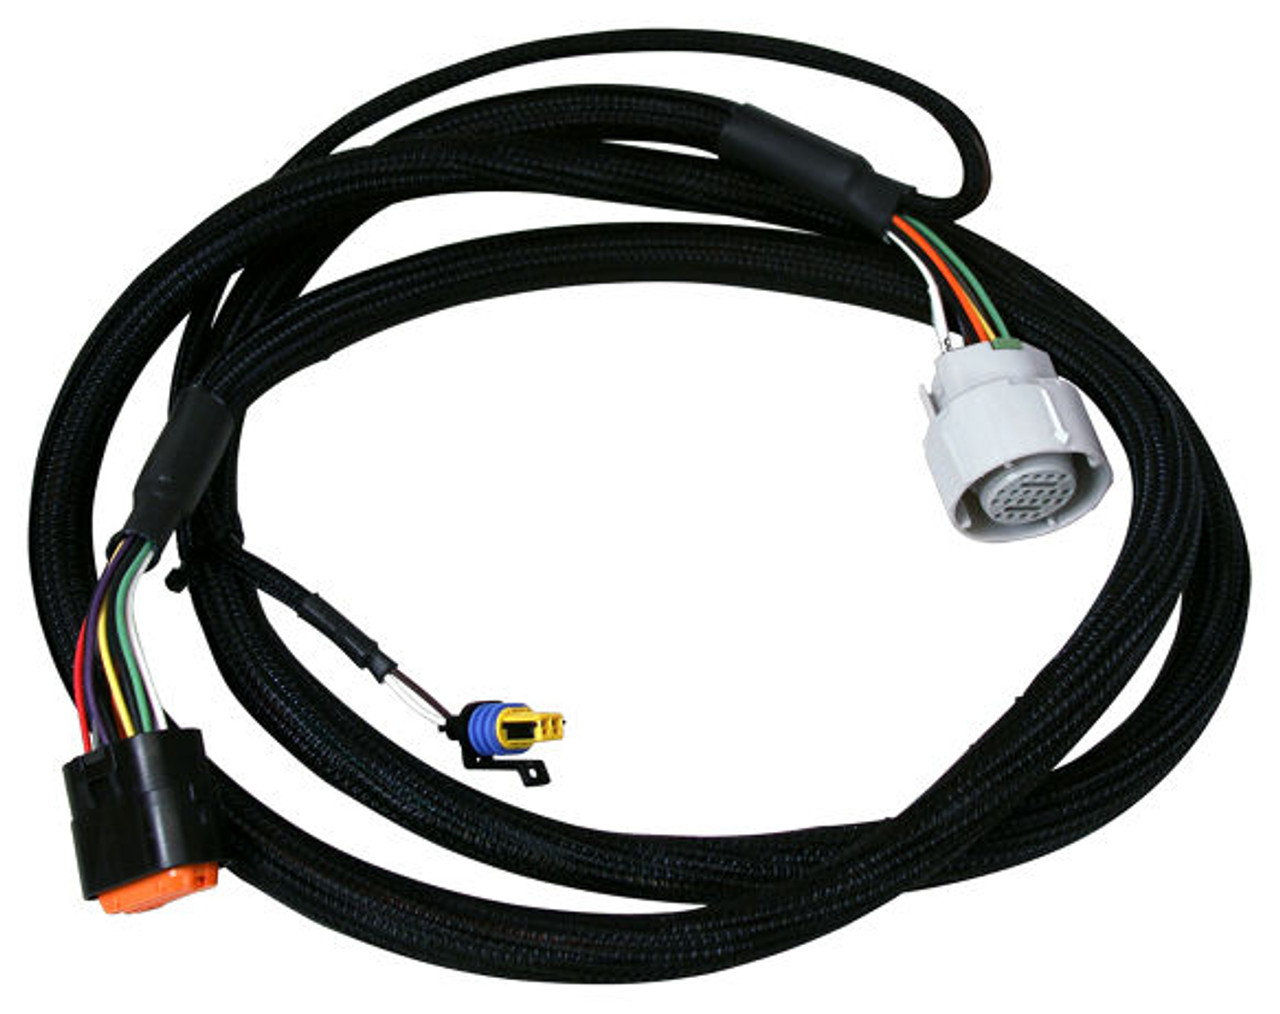 4l80e wiring harness msd atomic 2770 tcm harness for gm 4l60e 4l80e transmissions 4l80e wiring harness failure 2770 tcm harness for gm 4l60e 4l80e